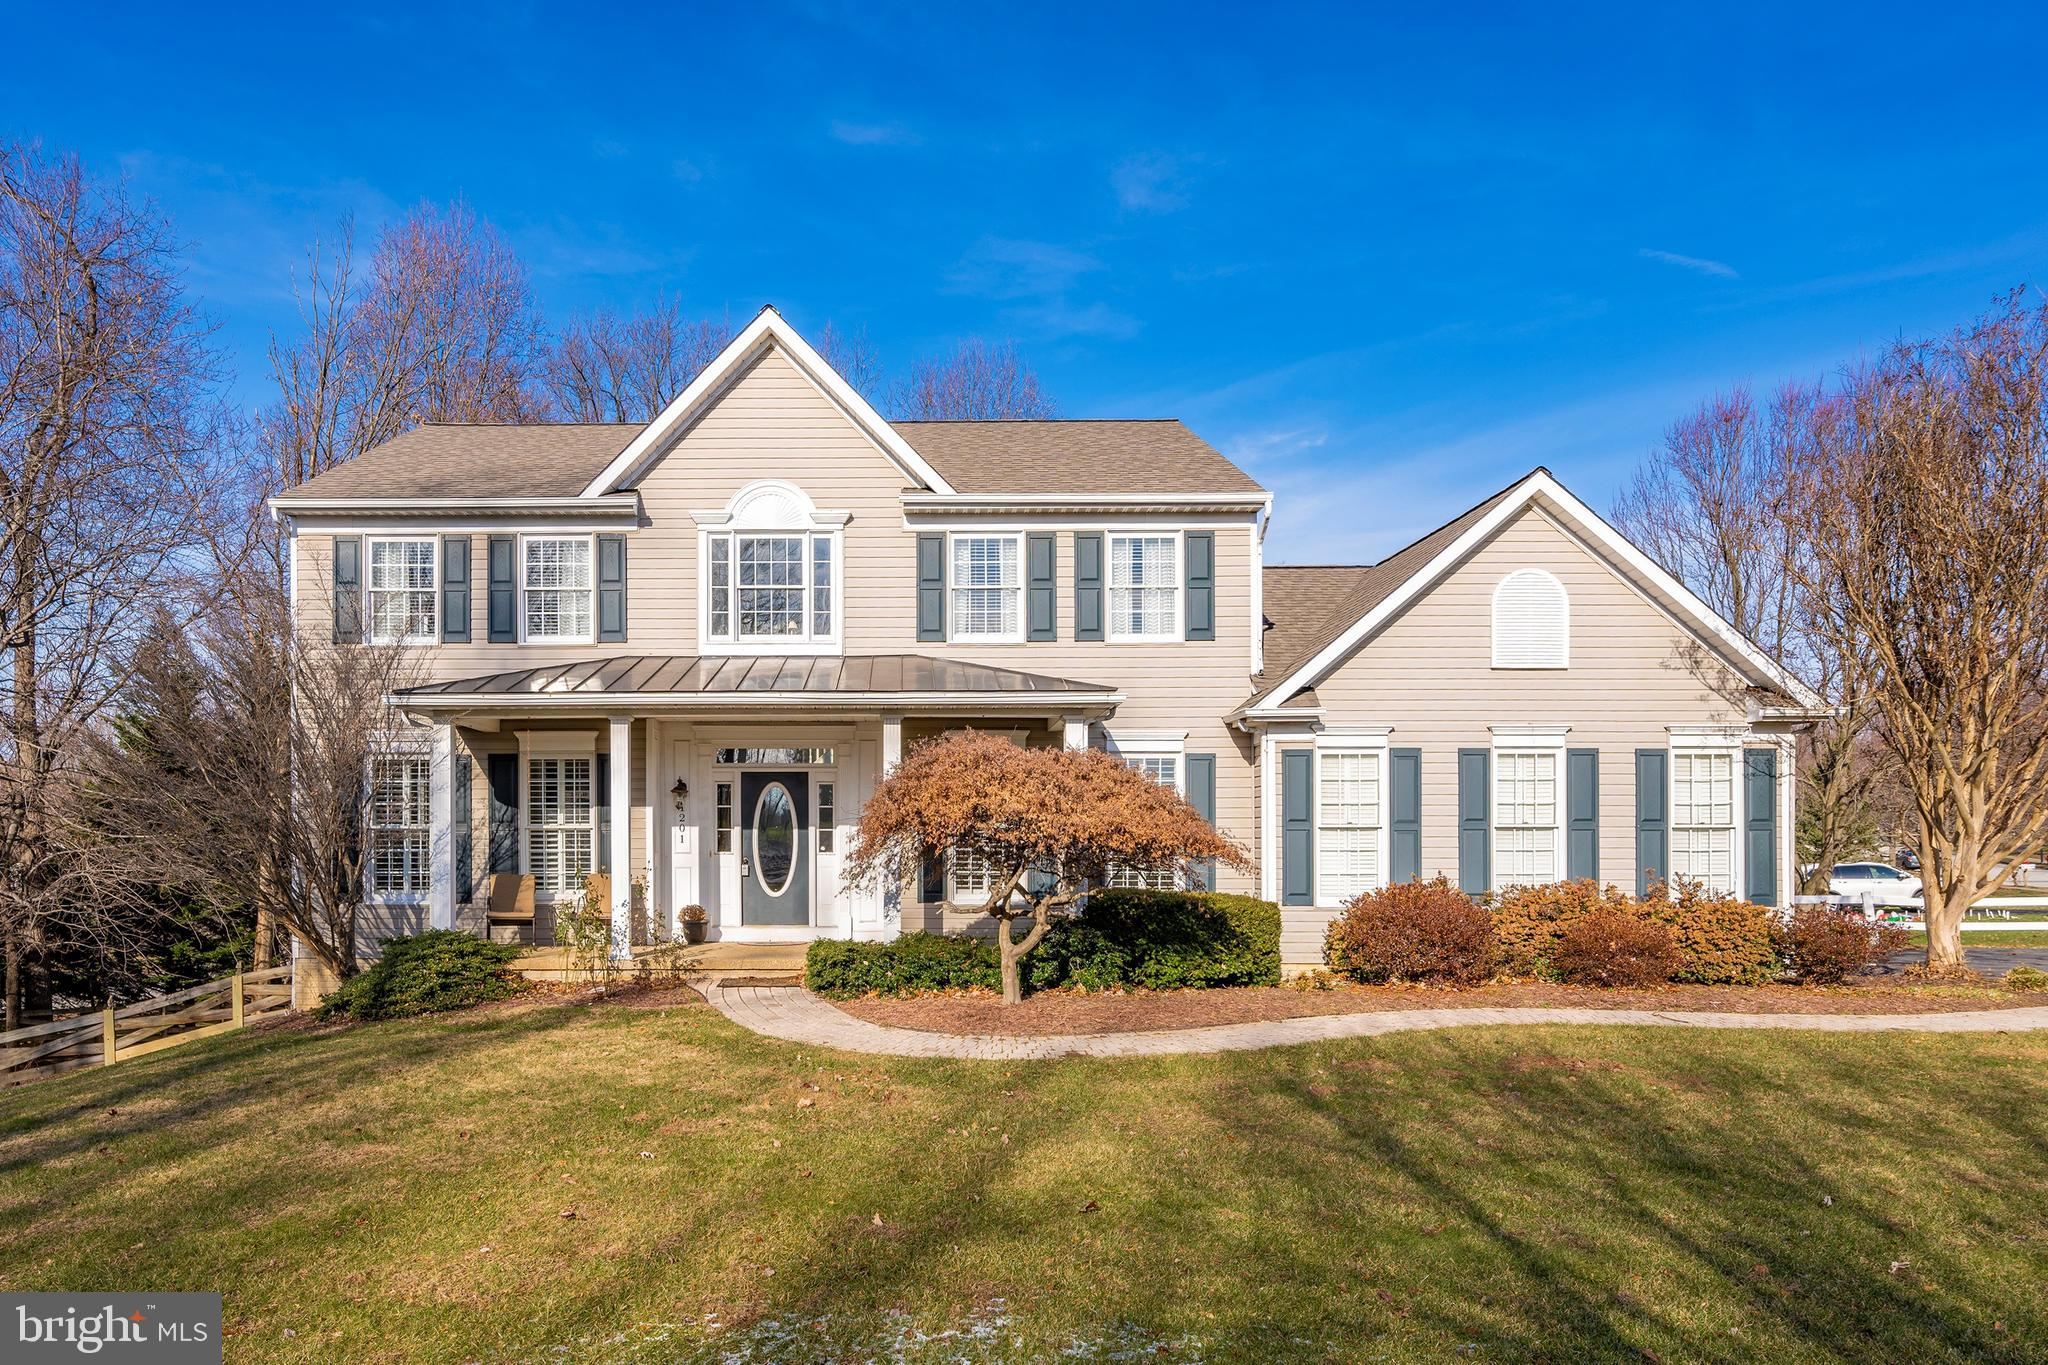 Don't miss your chance at this beautiful home located in the desirable Twin Ridge community! As the